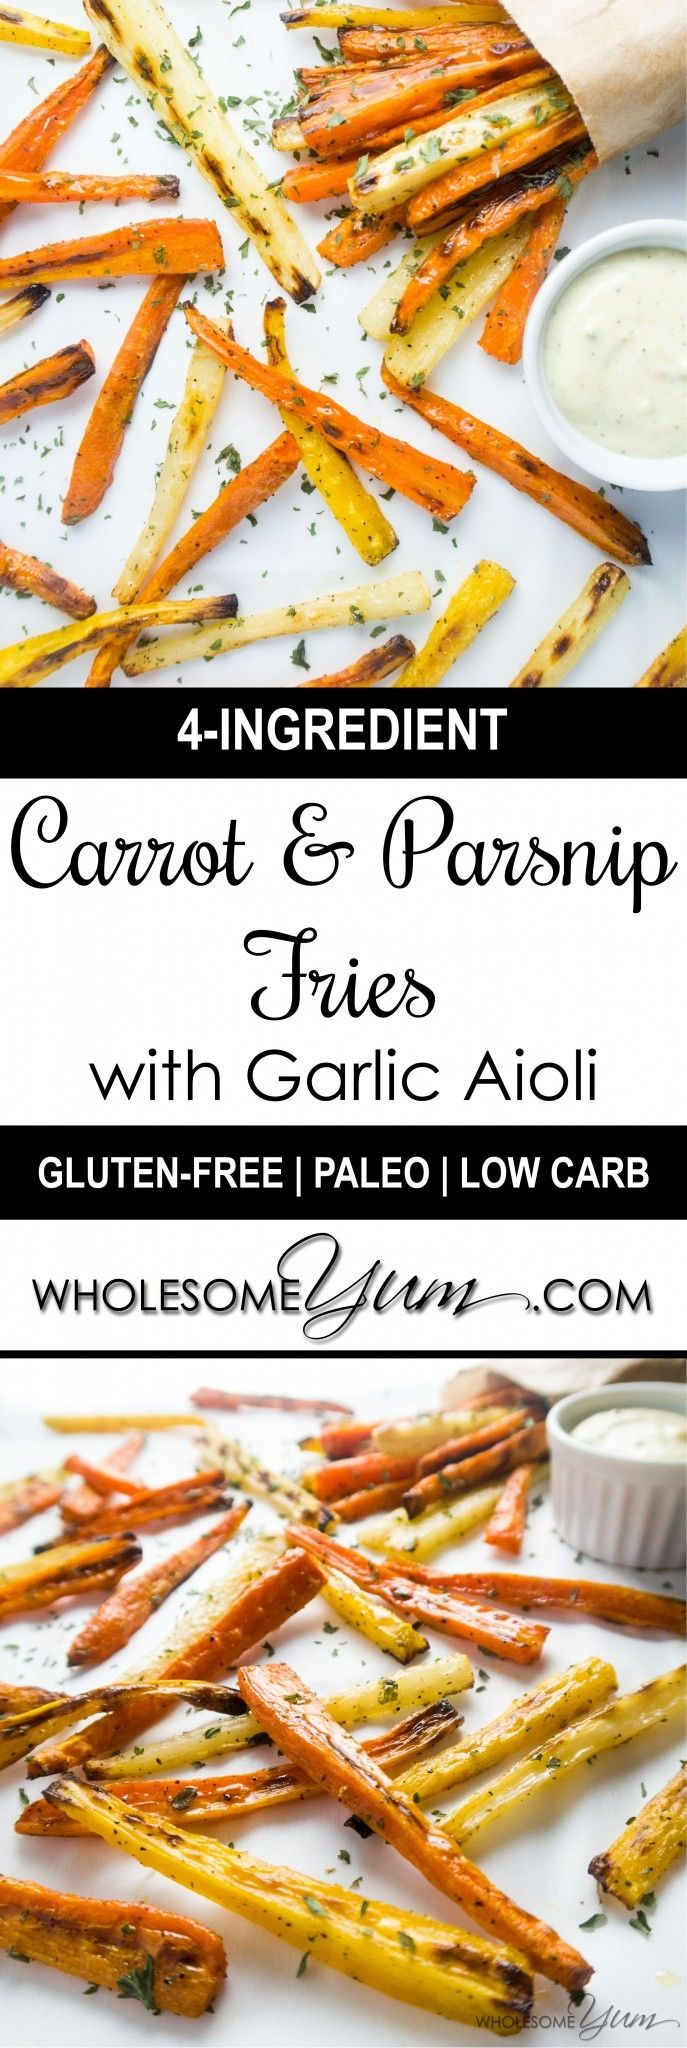 Carrot & Parsnip Fries with Garlic Aioli (Low Carb, Gluten-free)